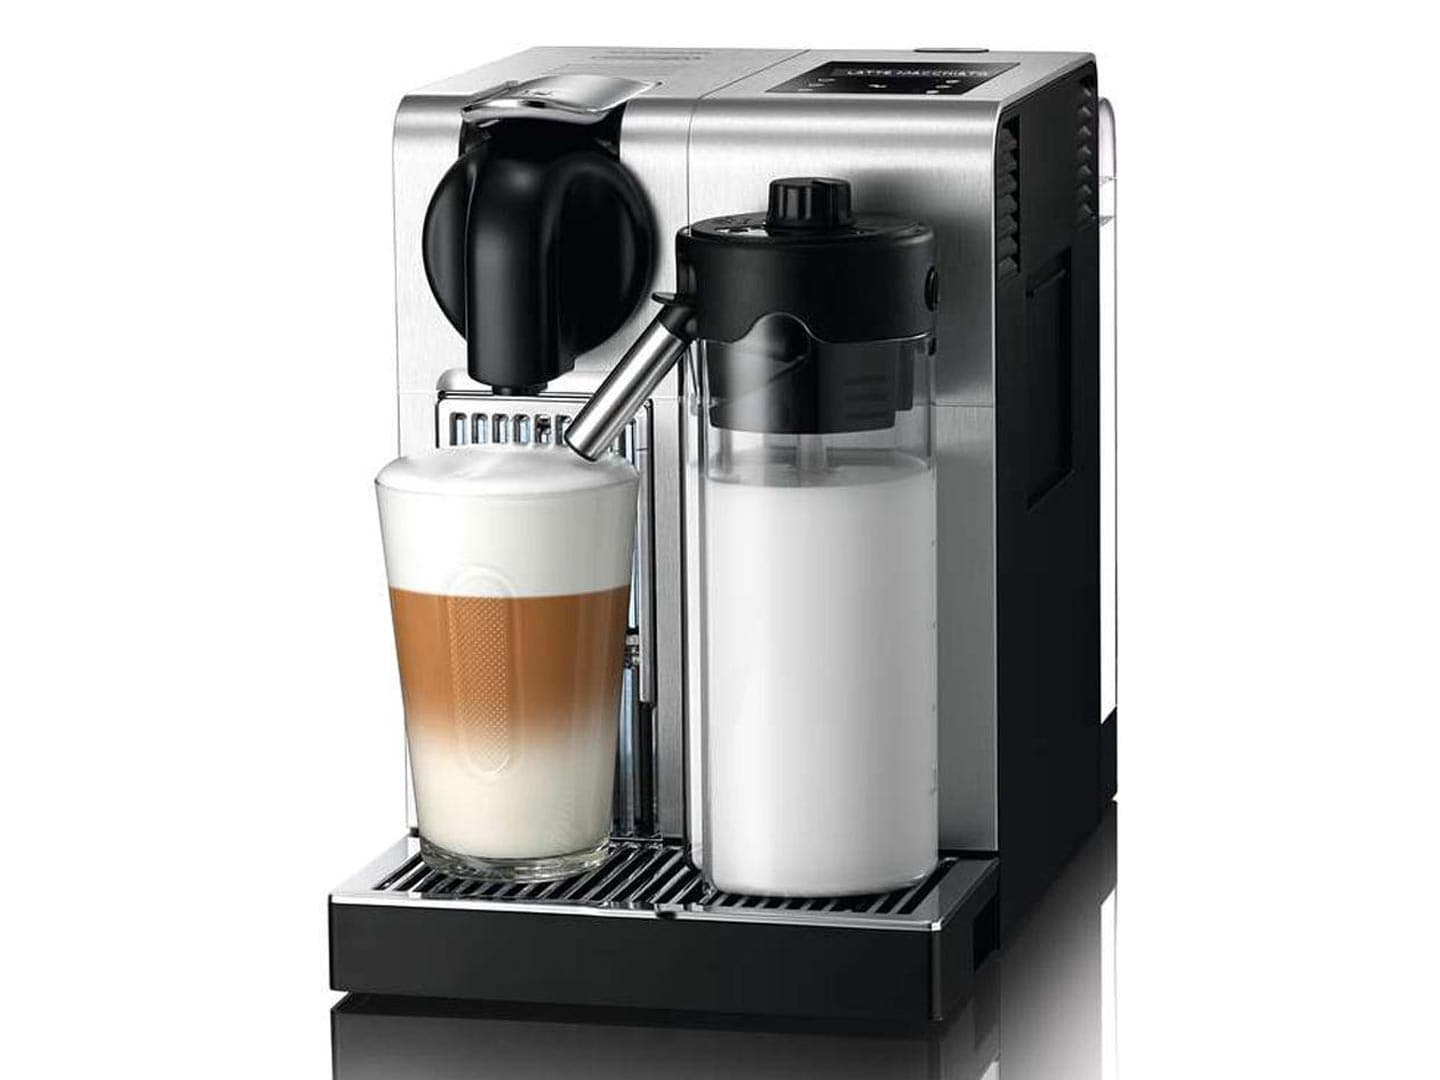 Delonghi lattissima pro en750mb coffee machine 8004399327900 ebay - Machine a cafe nespresso ...